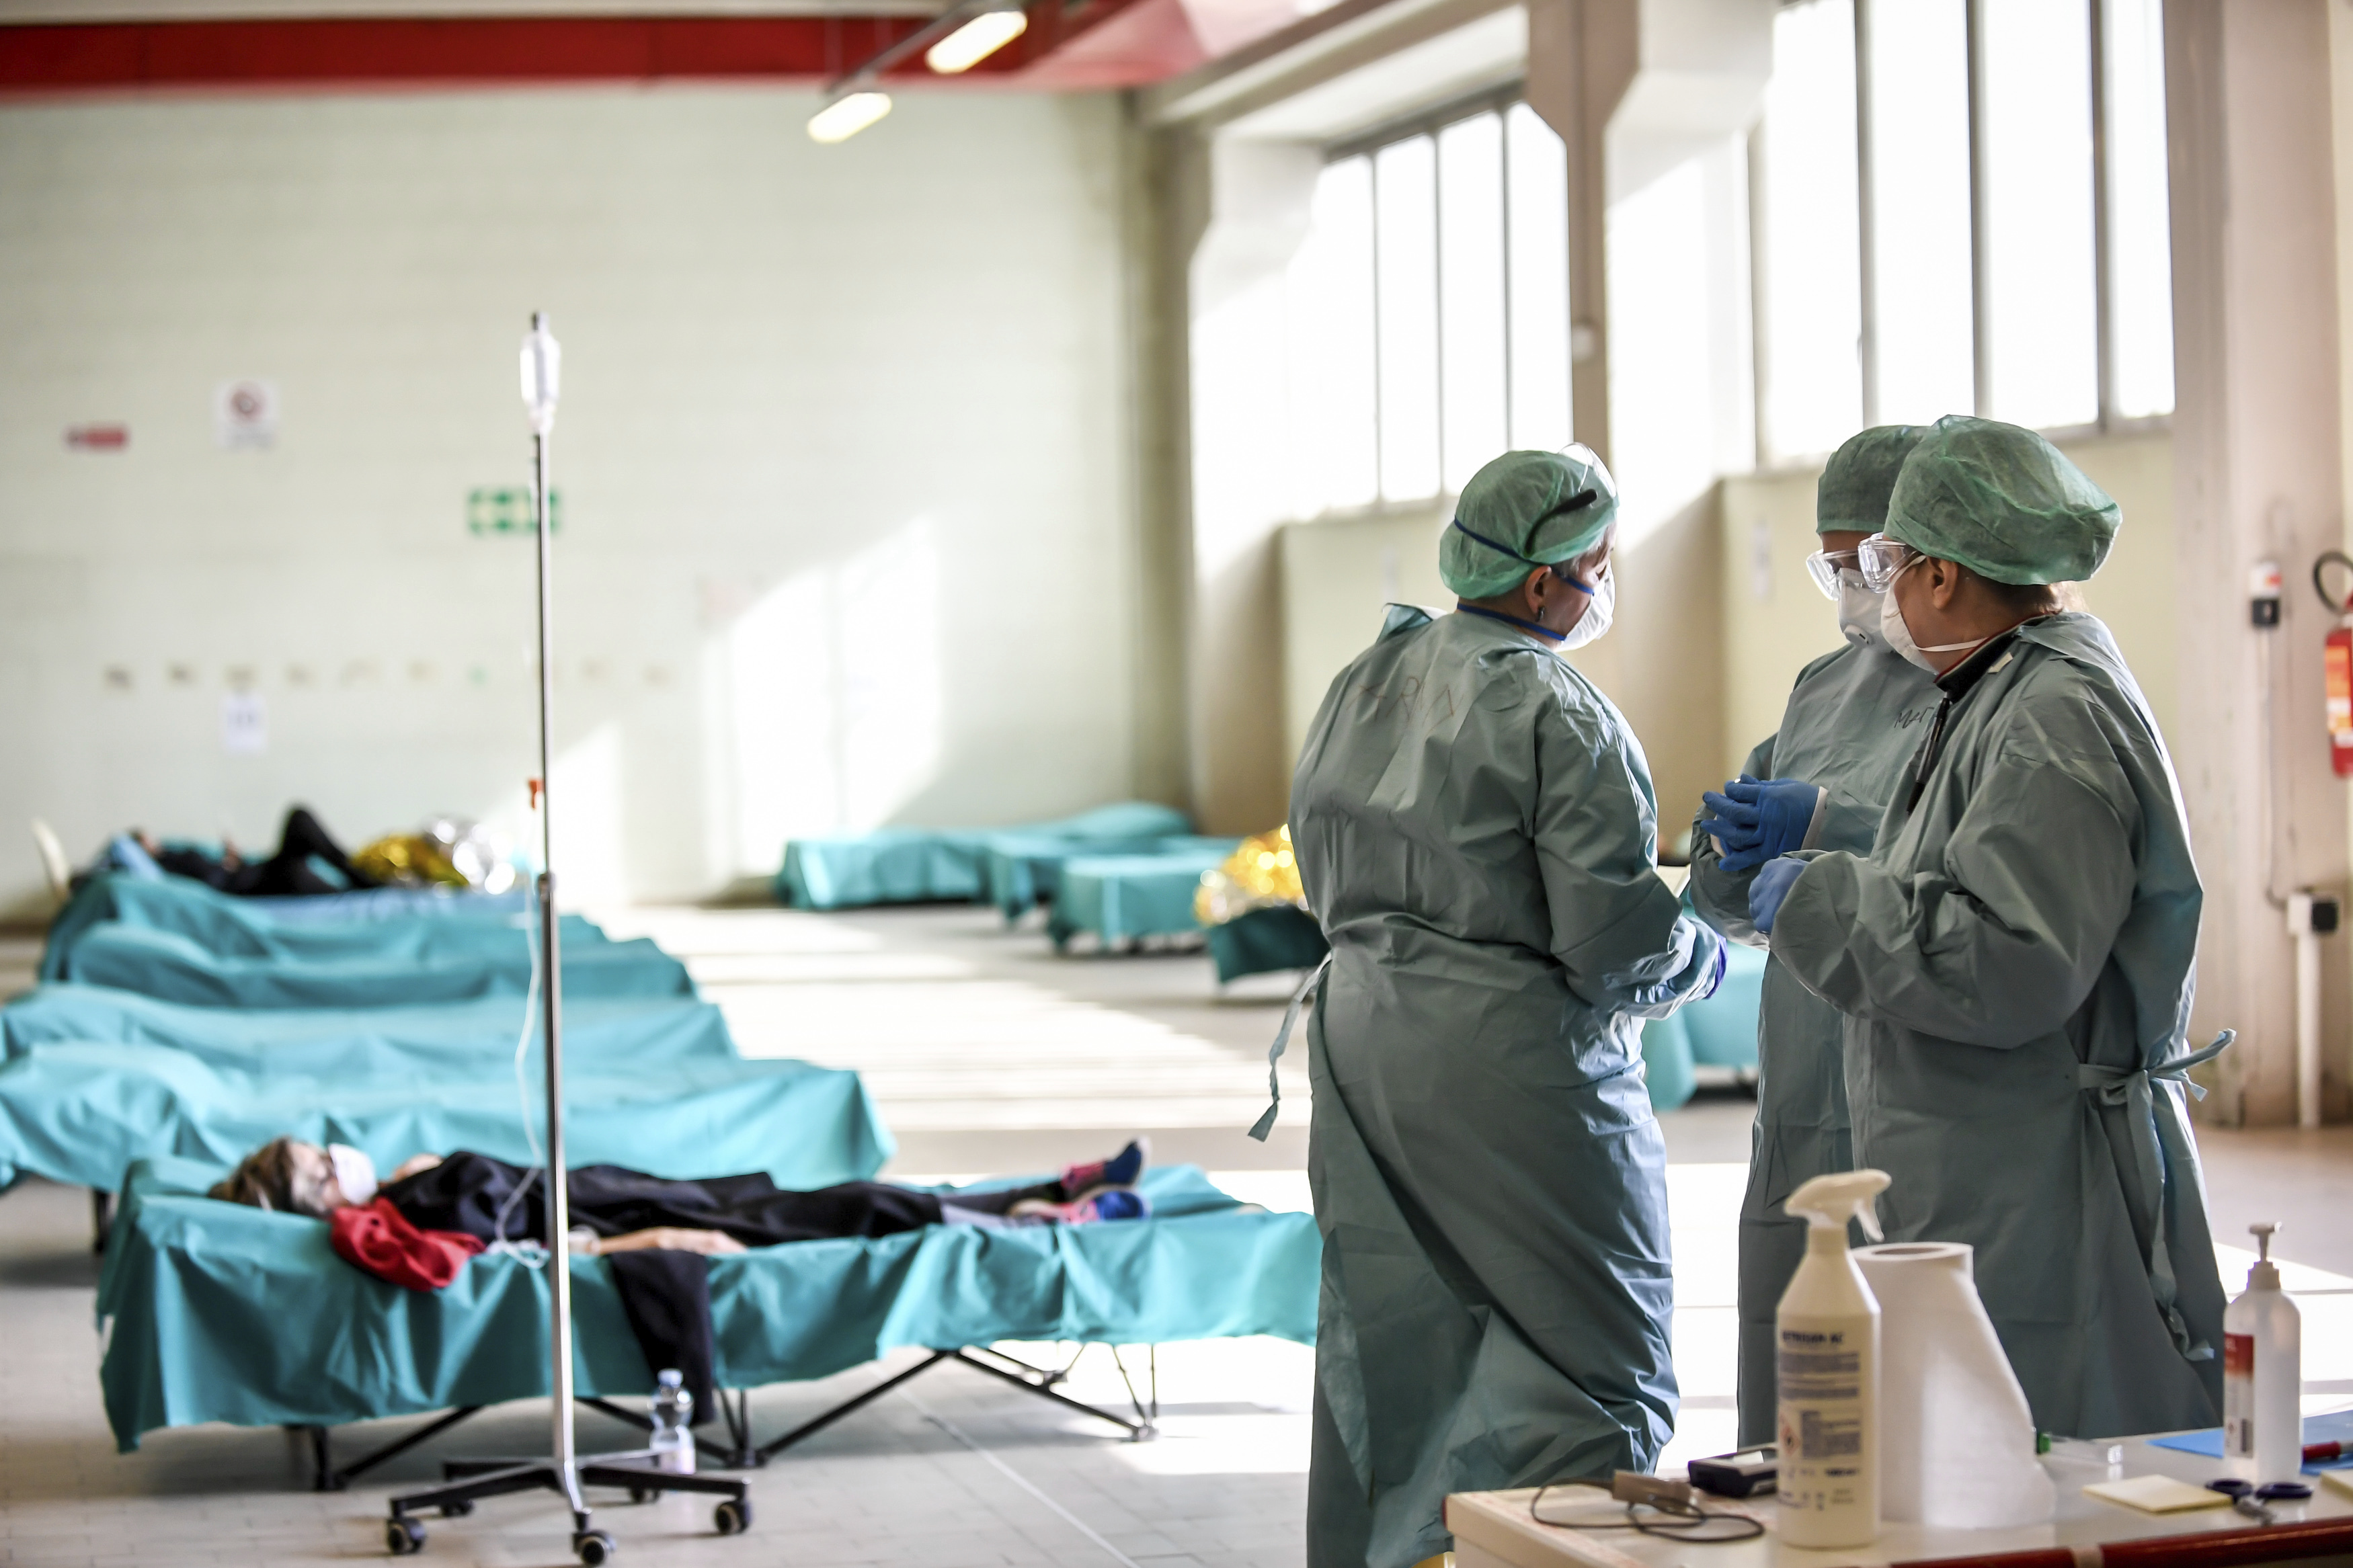 Medical personnel work inside one of the emergency structures that were set up to ease procedures at the hospital of Brescia, in Northern Italy, on Tuesday, March 10.